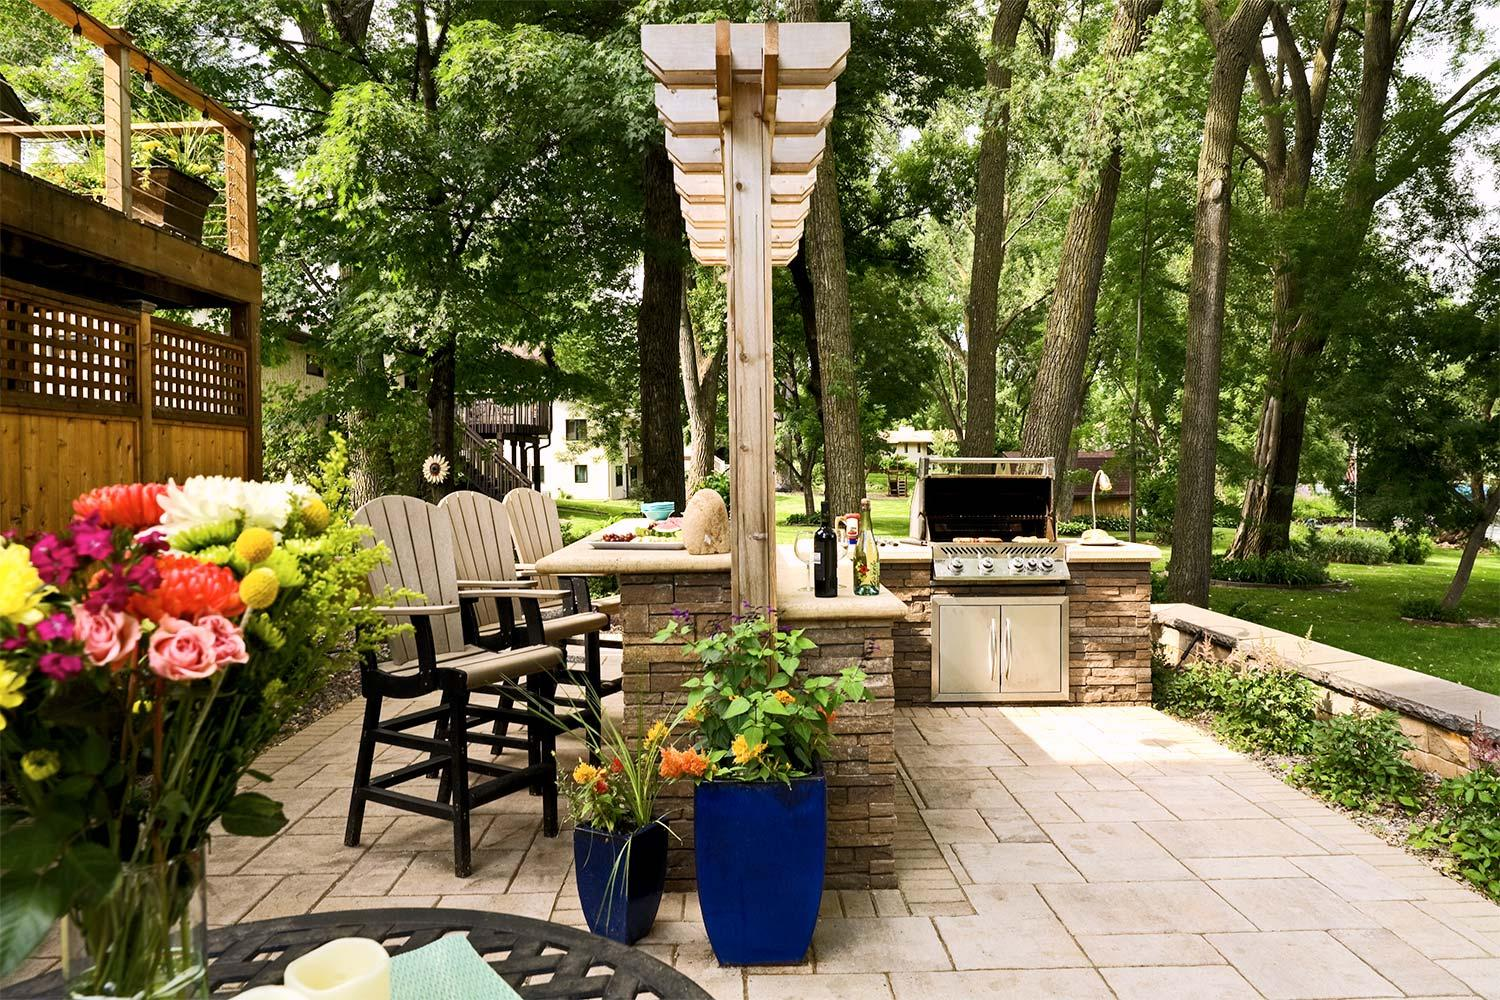 Backyard outdoor kitchen with an arbor, bar seating, and built-in gas grill.